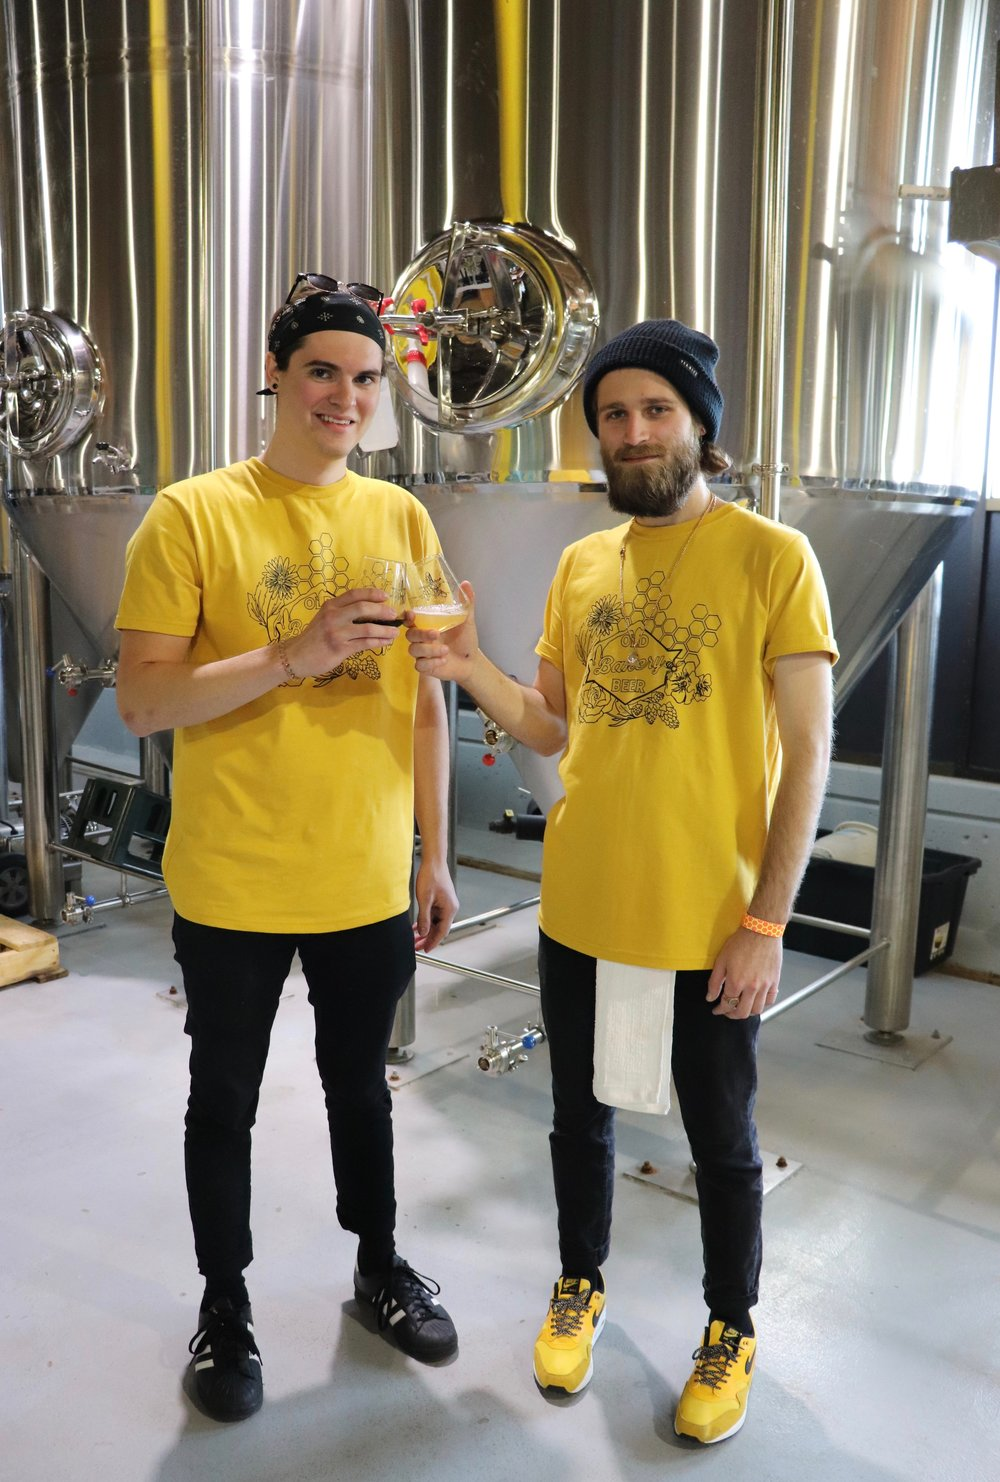 Left to right, Darrius Spangler and Austin Hayden, employees of OBB, enjoy a toast to beer and bees.  Photo by Rosita